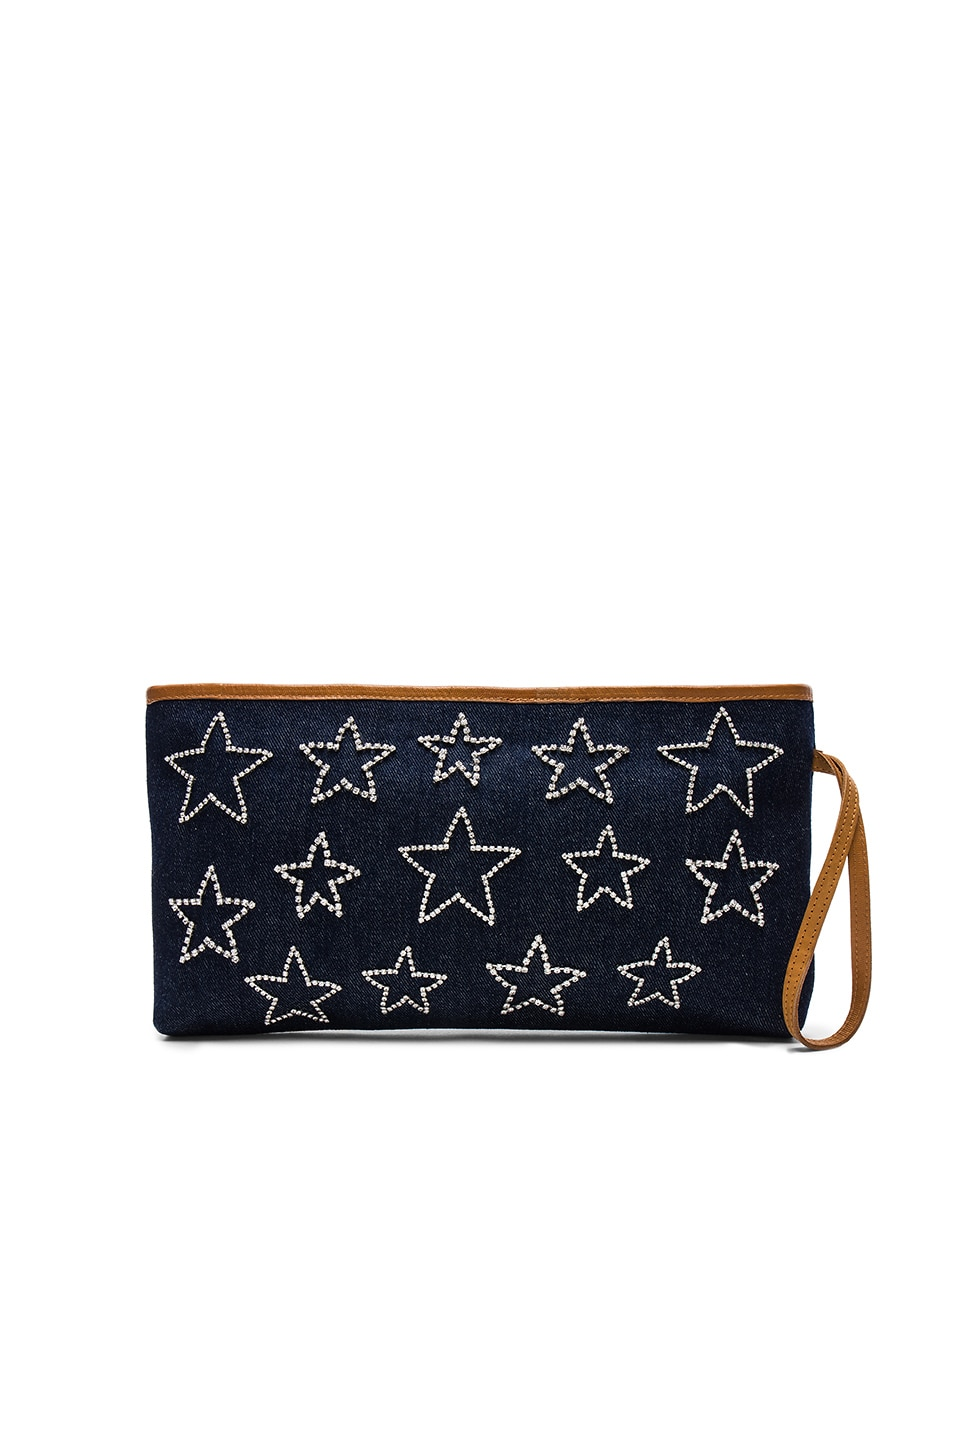 Star Clutch by Mystique